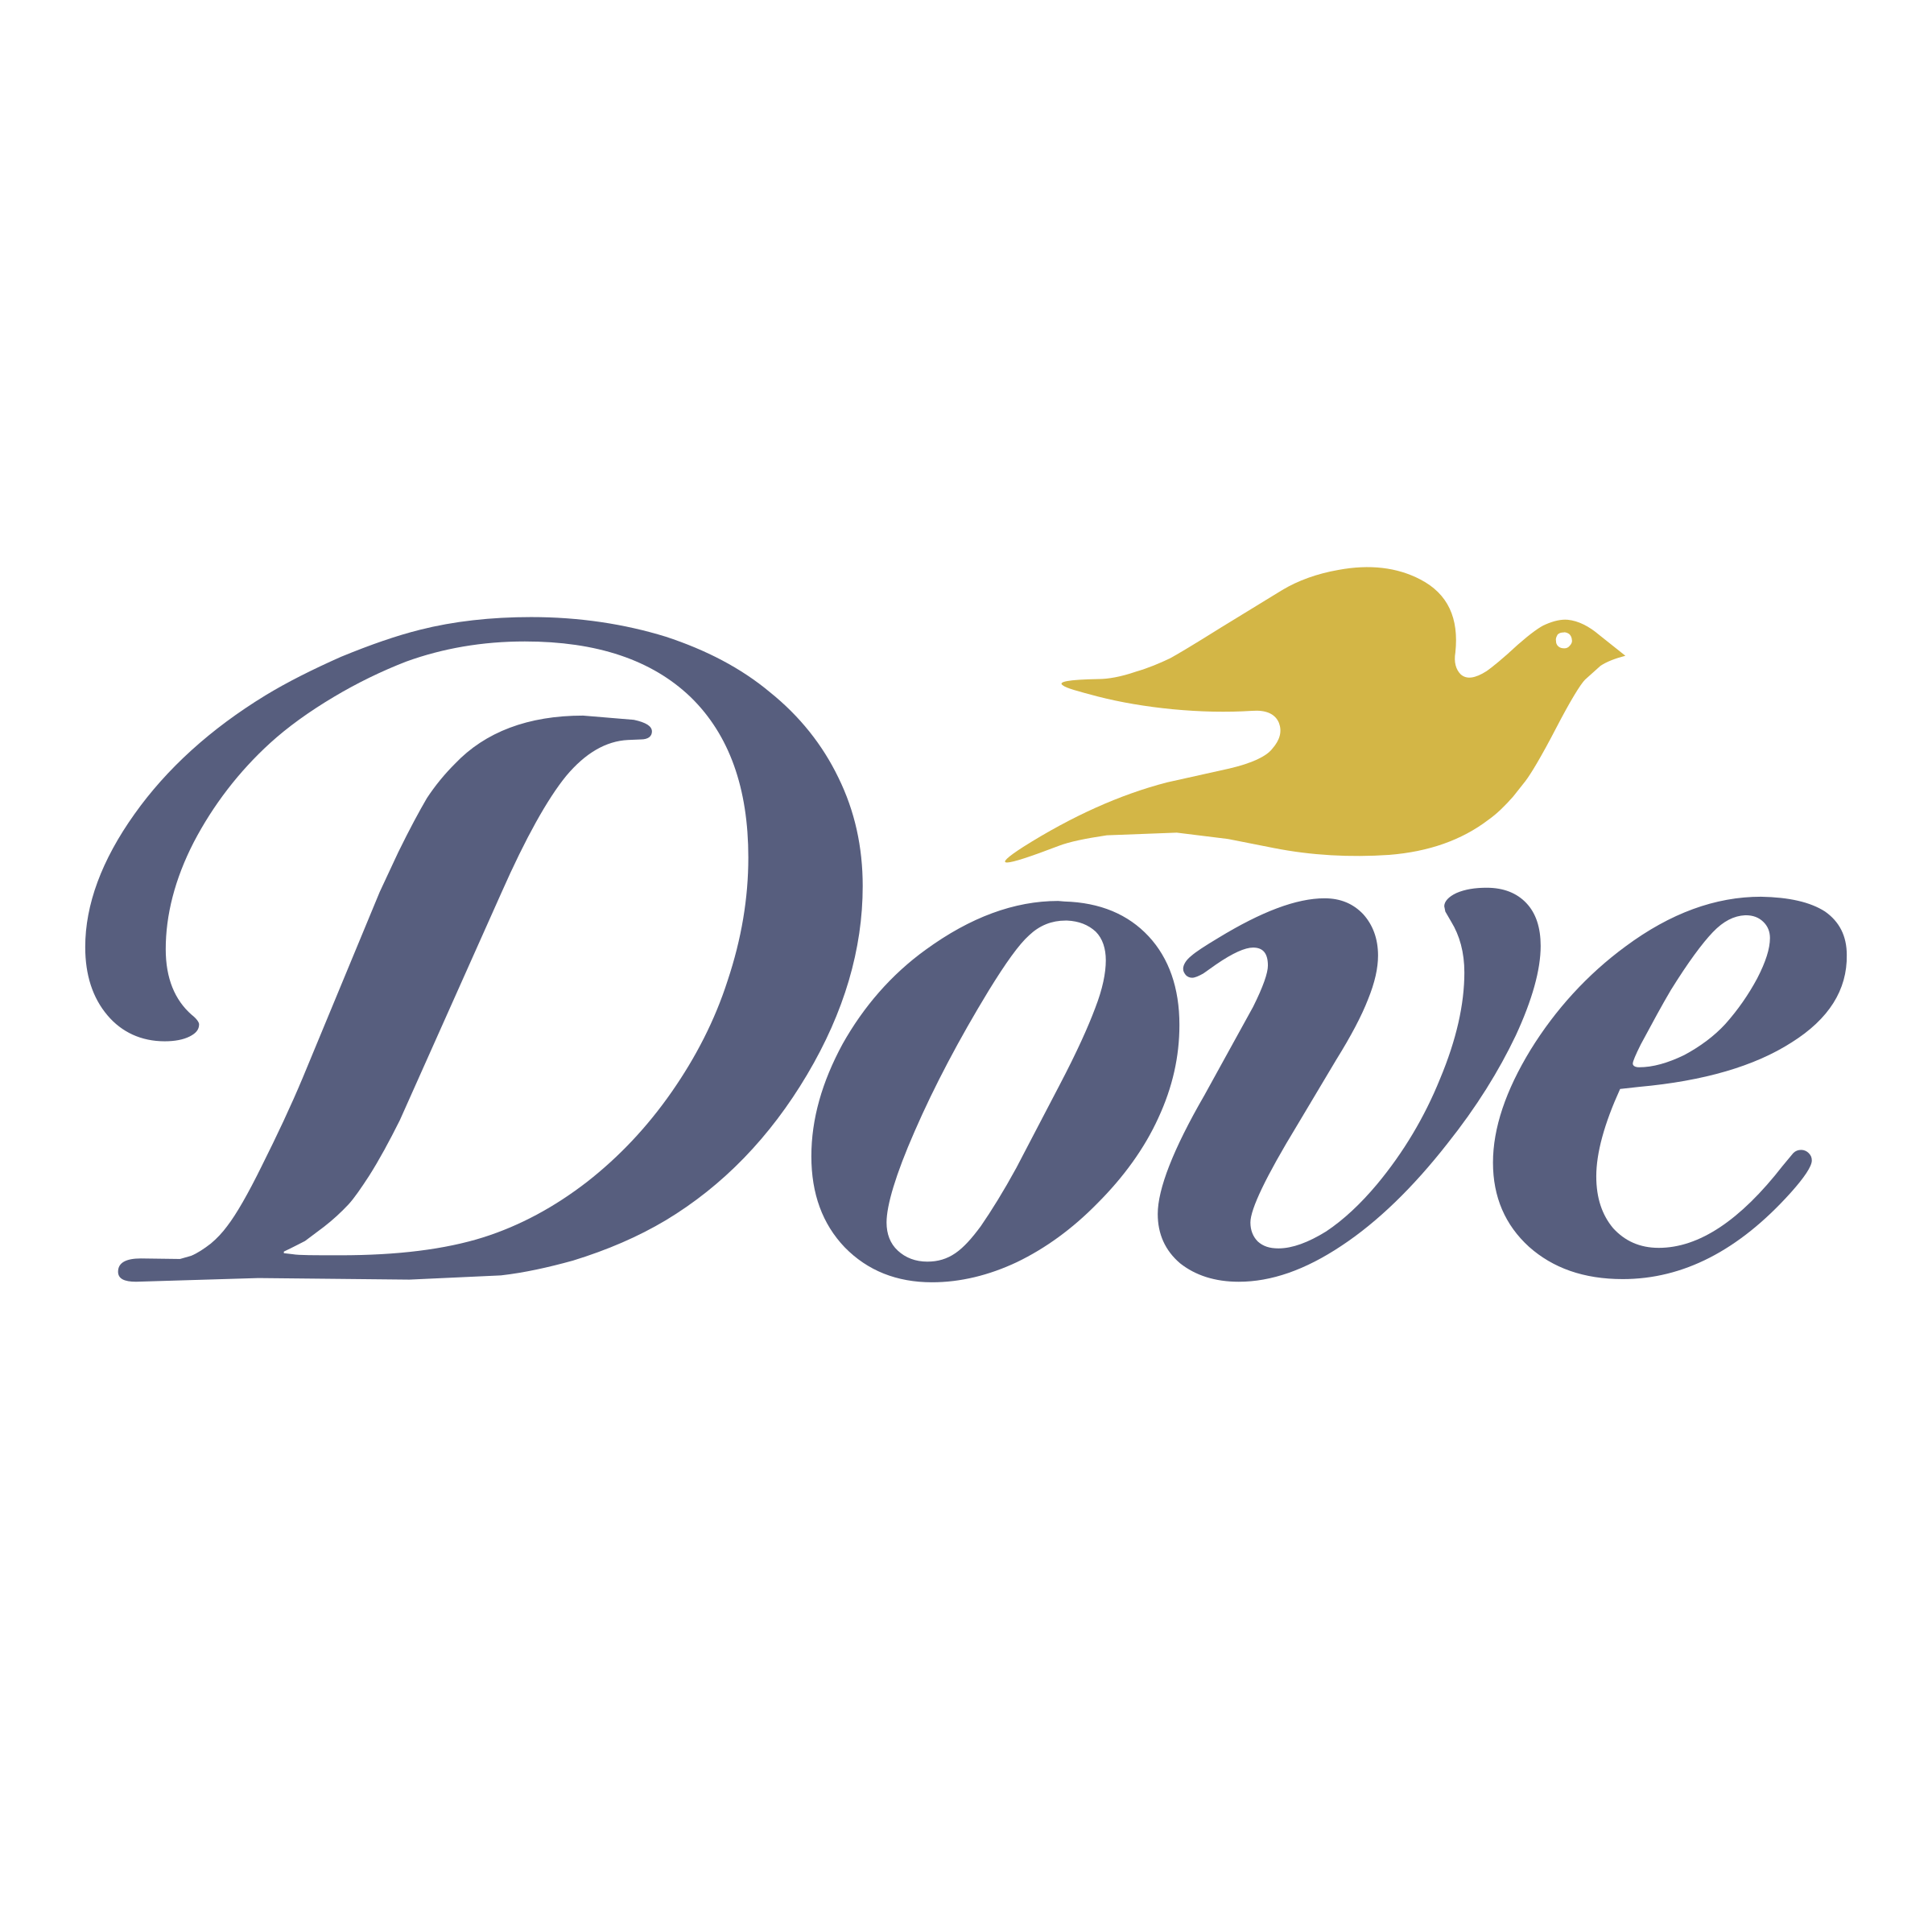 Vector doves svg. Dove logo png transparent